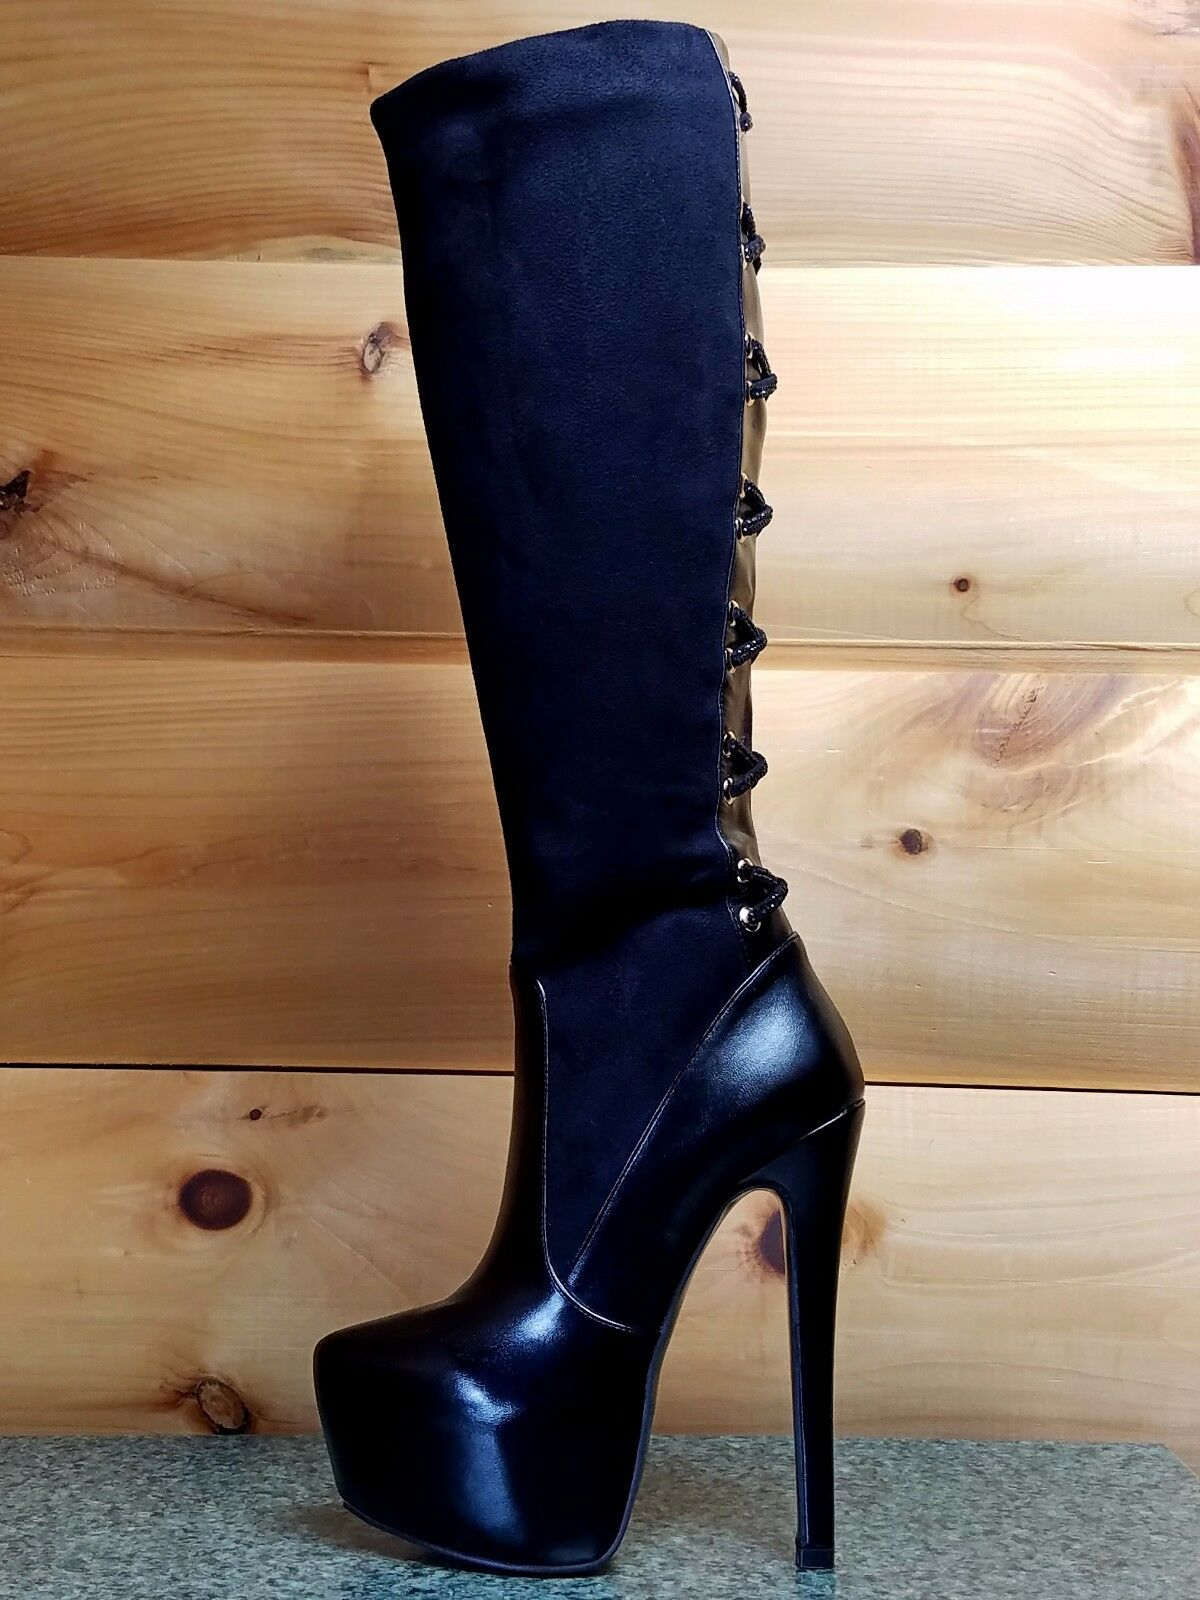 Luichiny Real Lee Black FX Suede and Leatherette  6